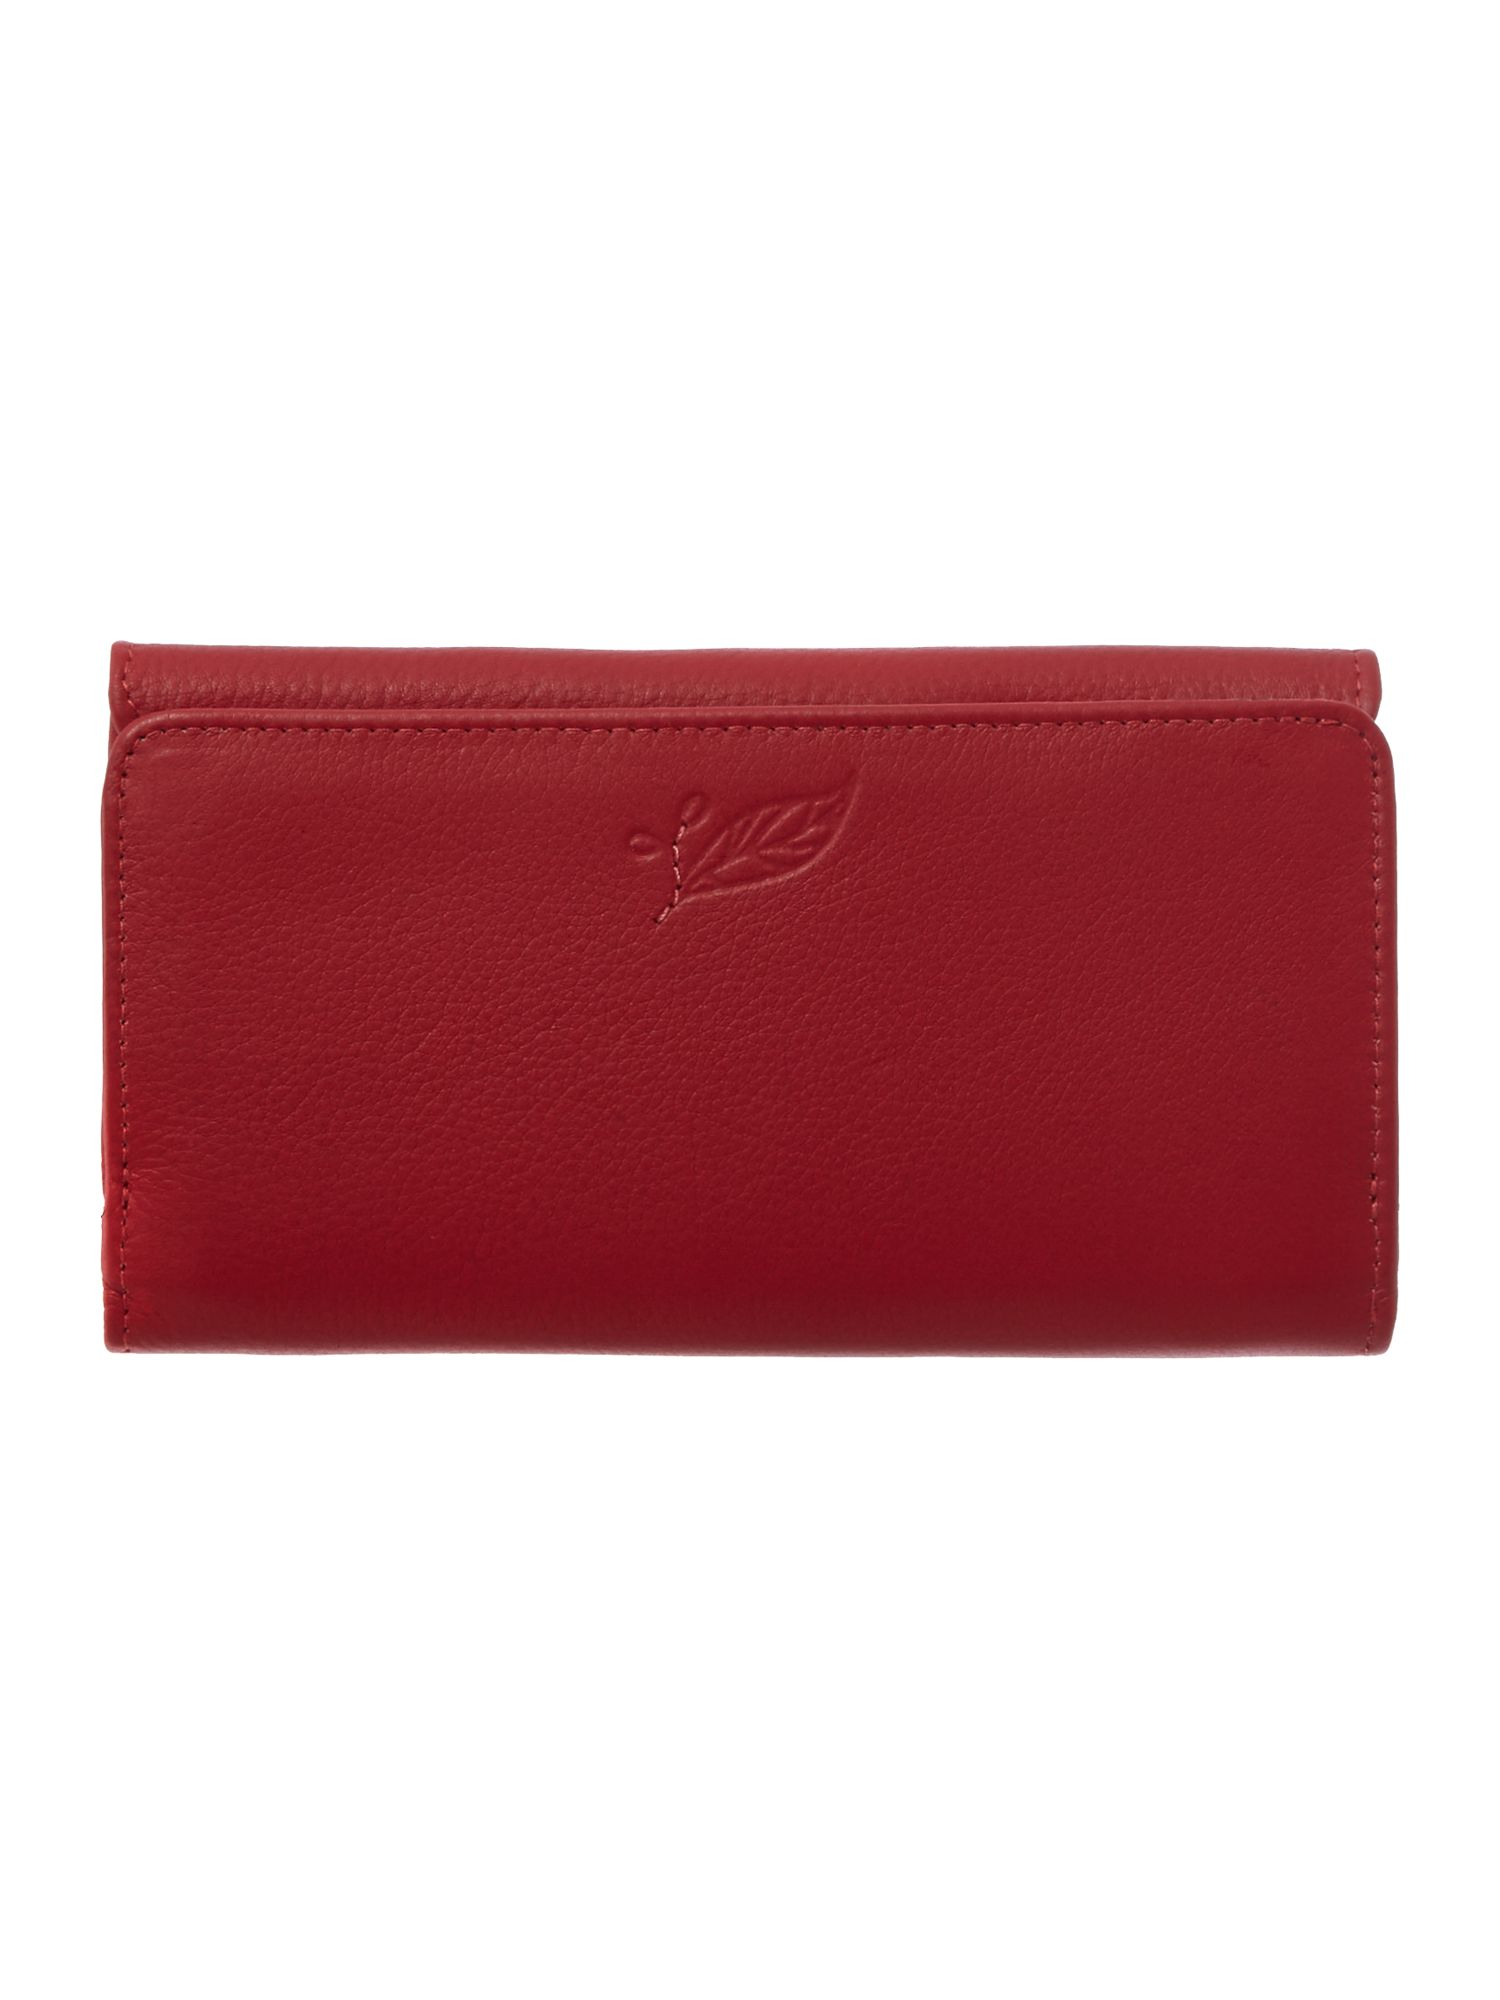 Laurel leaf red large flap over purse